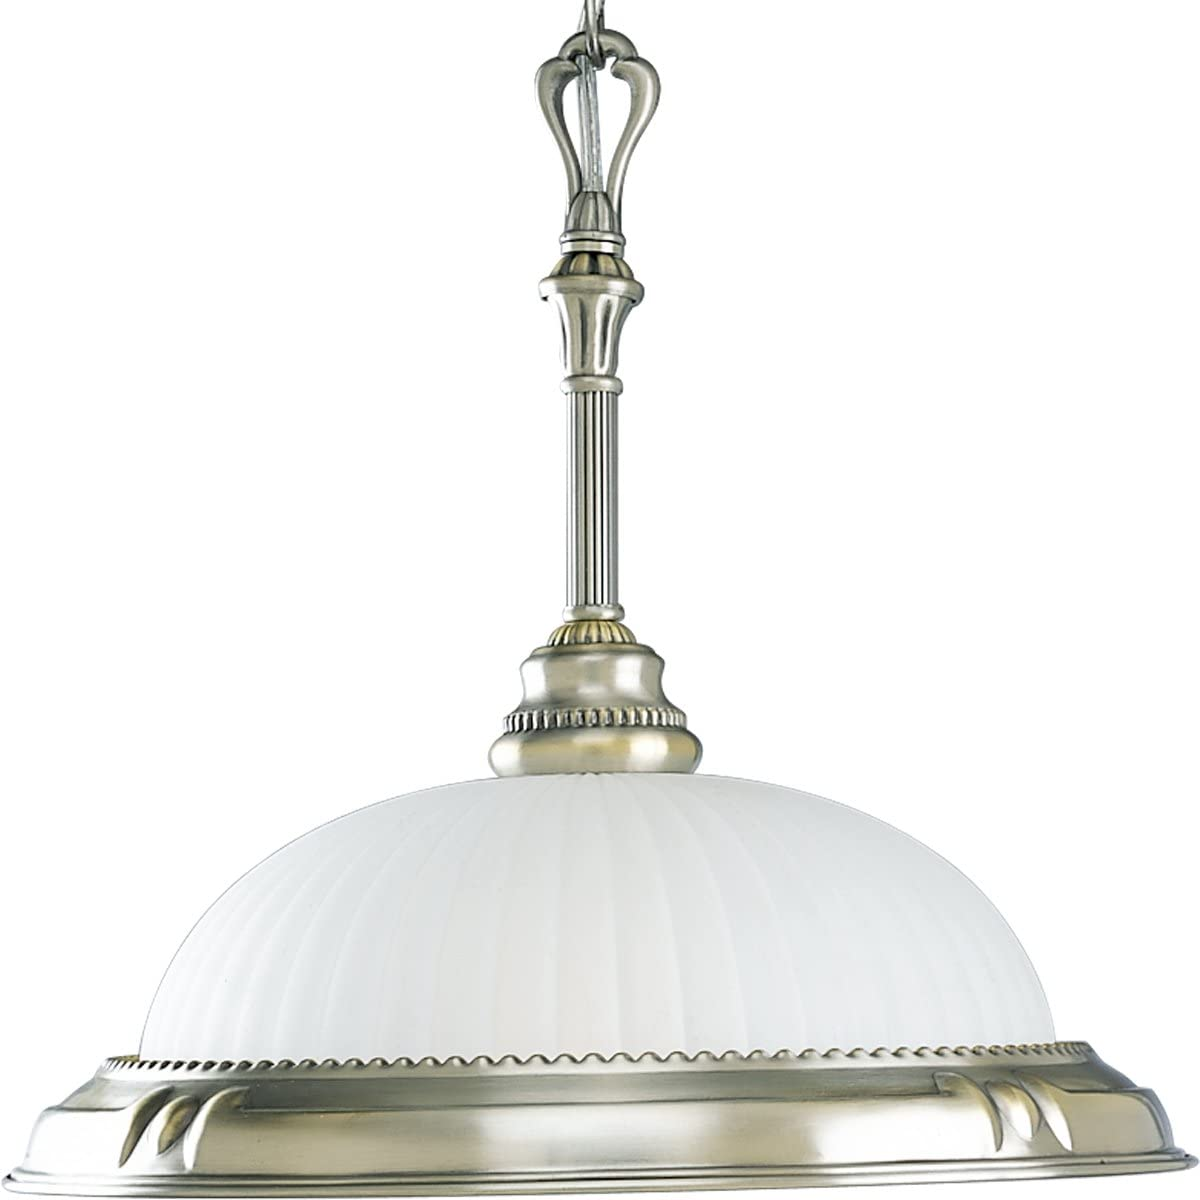 Progress Lighting P5008-43 One-Light Pendant with Etched Patterned Glass, Colonial Silver